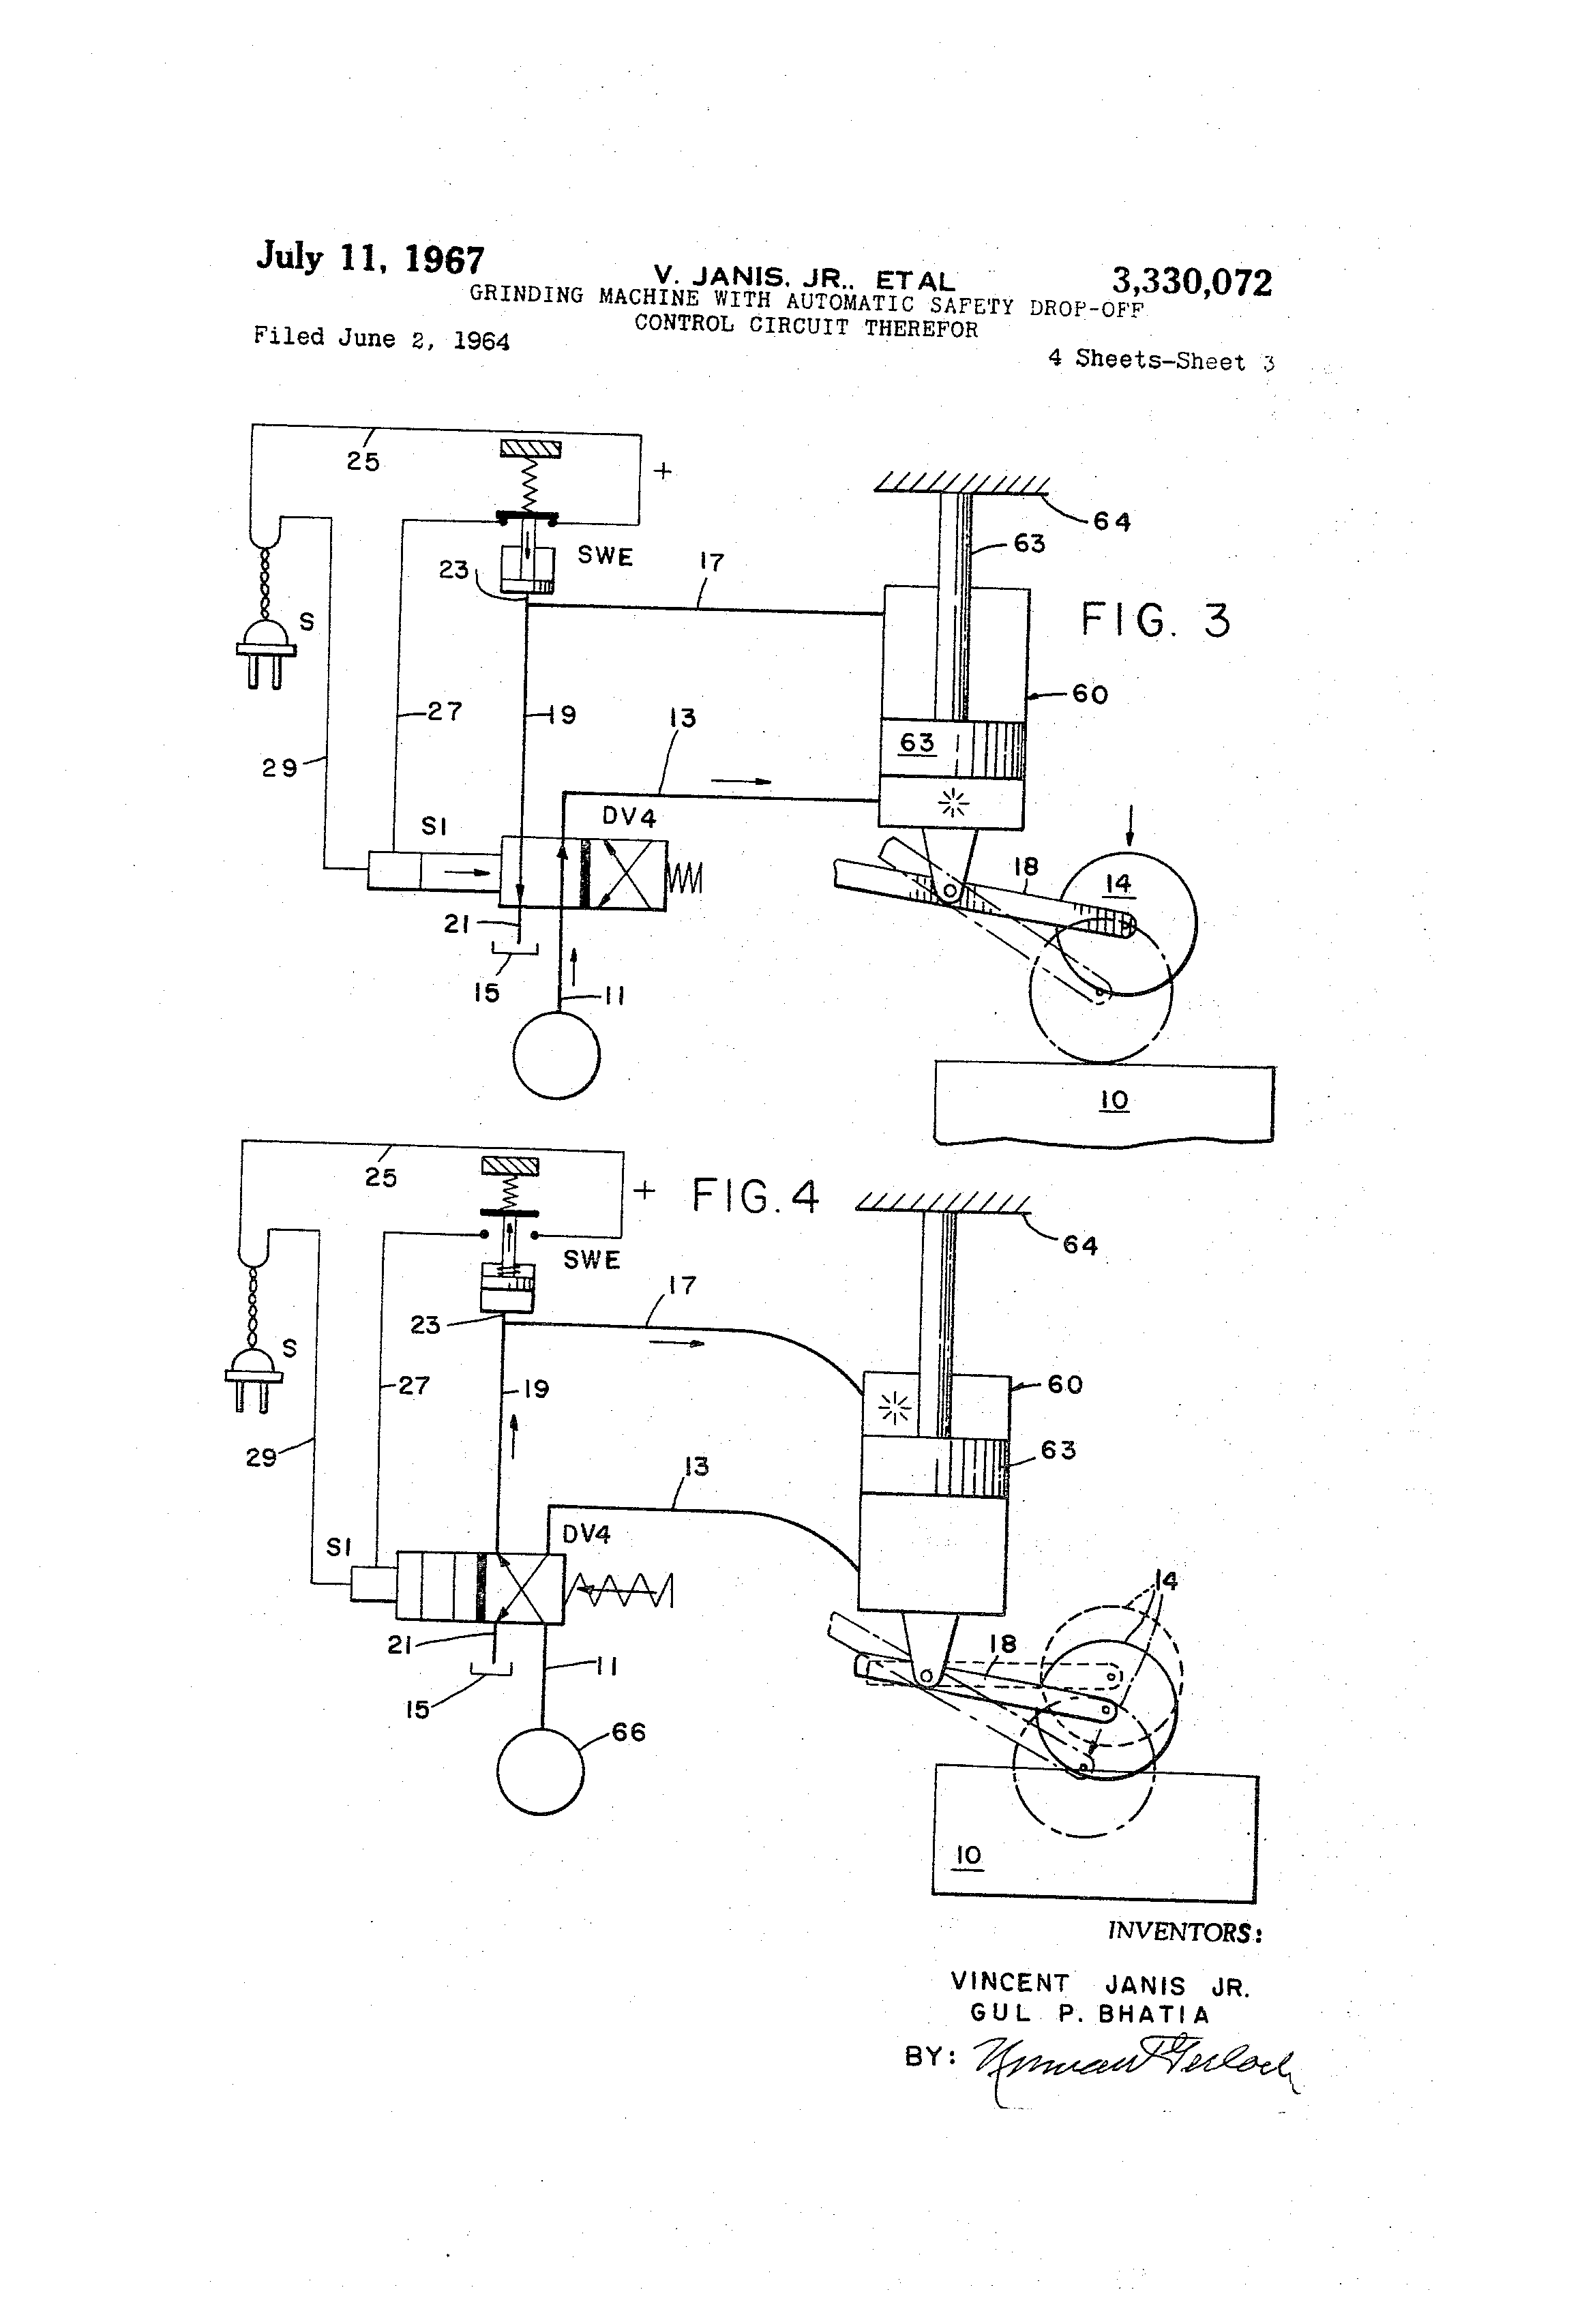 ... Wiring Diagram And Source · Lot Details Source 2 patent us3330072  grinding machine with automatic safety drop off Brown and Sharpe